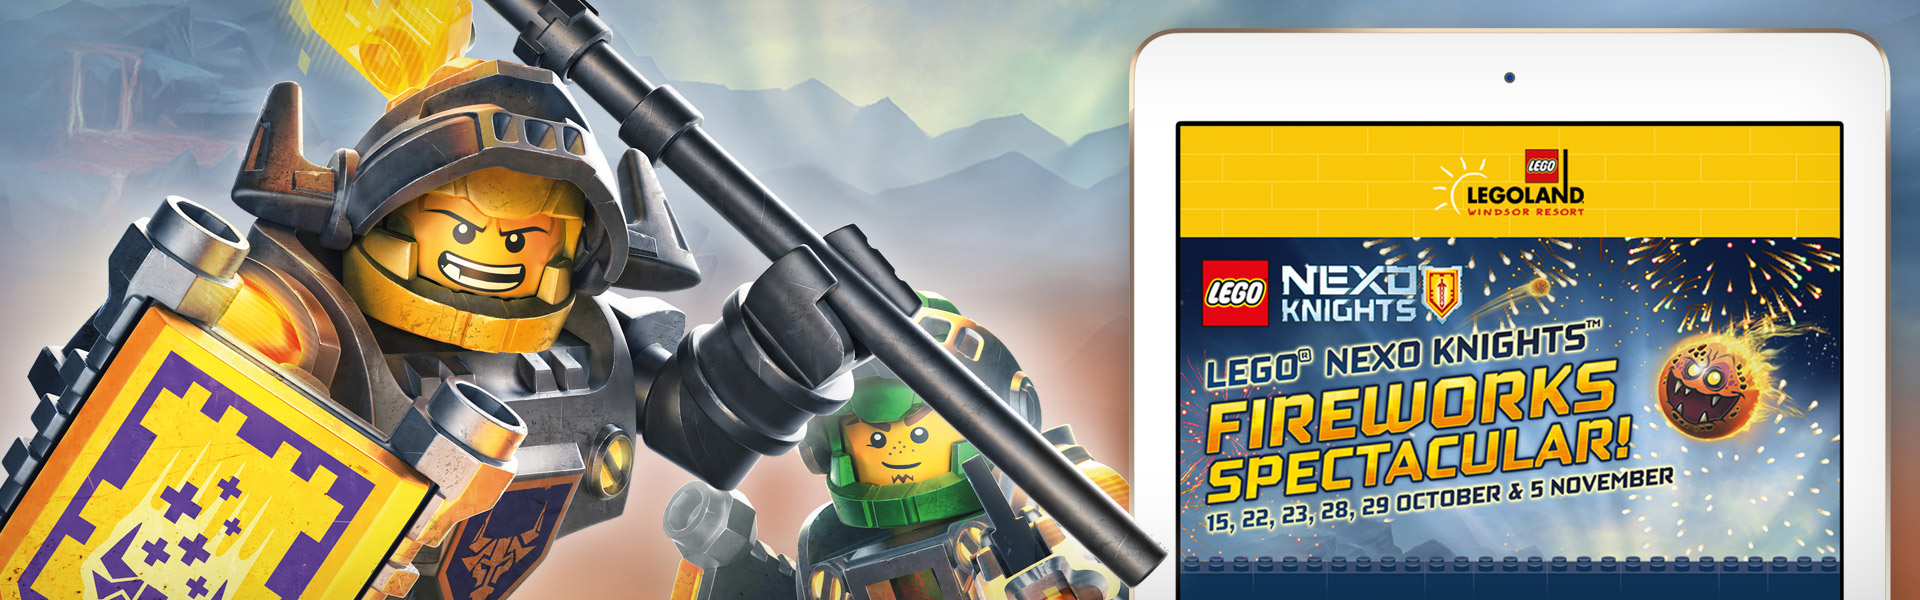 Legoland Nexo Knights Email Campaign